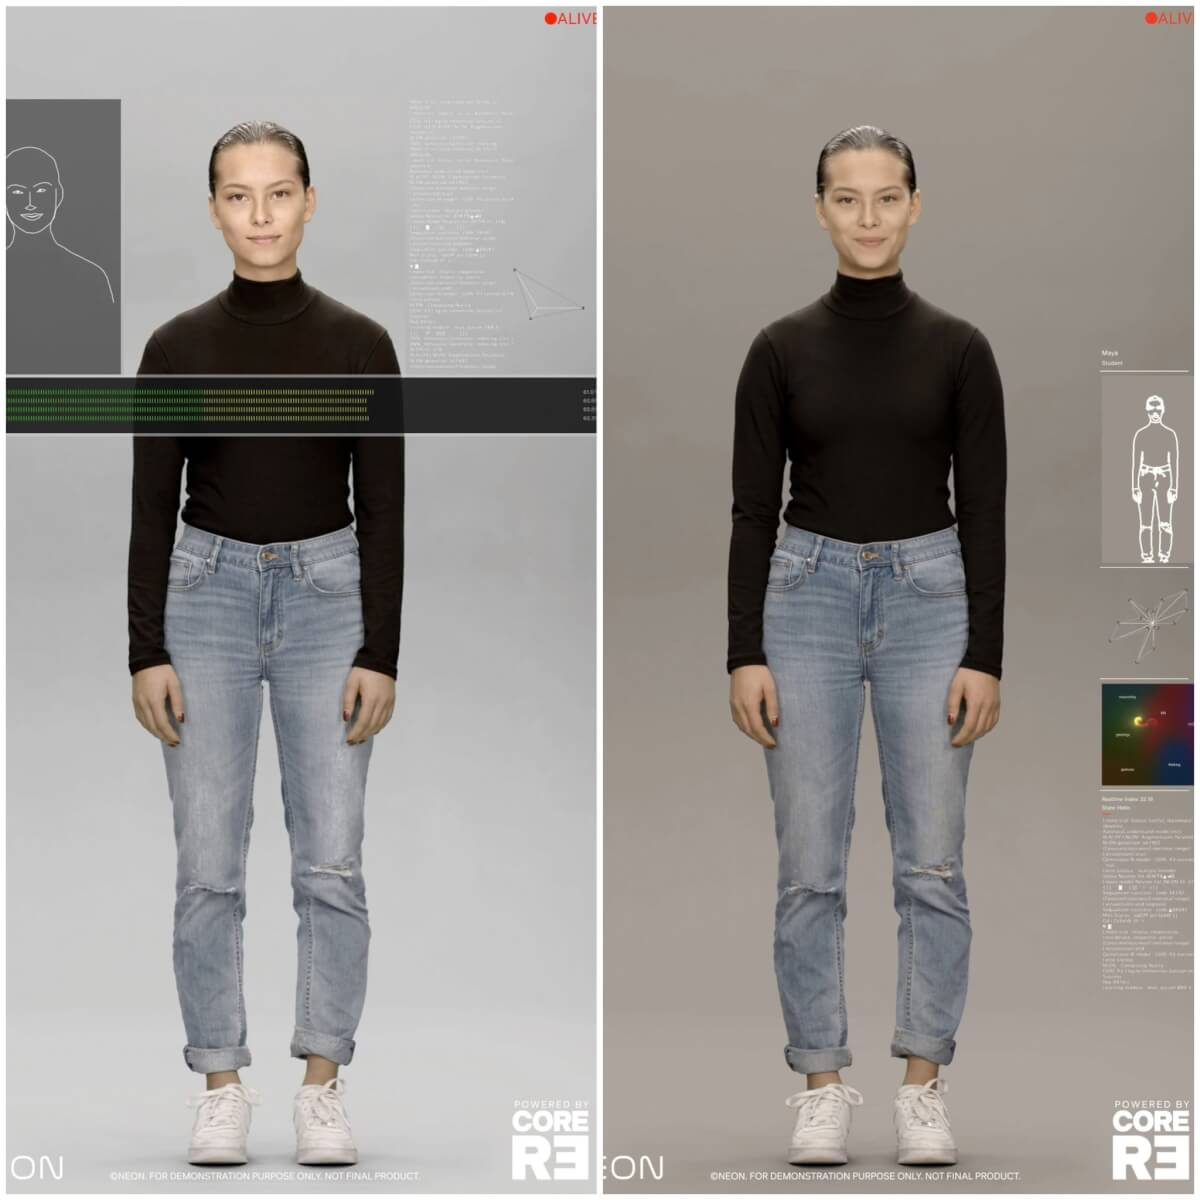 Beyond Uncanny: Samsung Debuts Neon Artificial Humans That Look and Act Like Real People